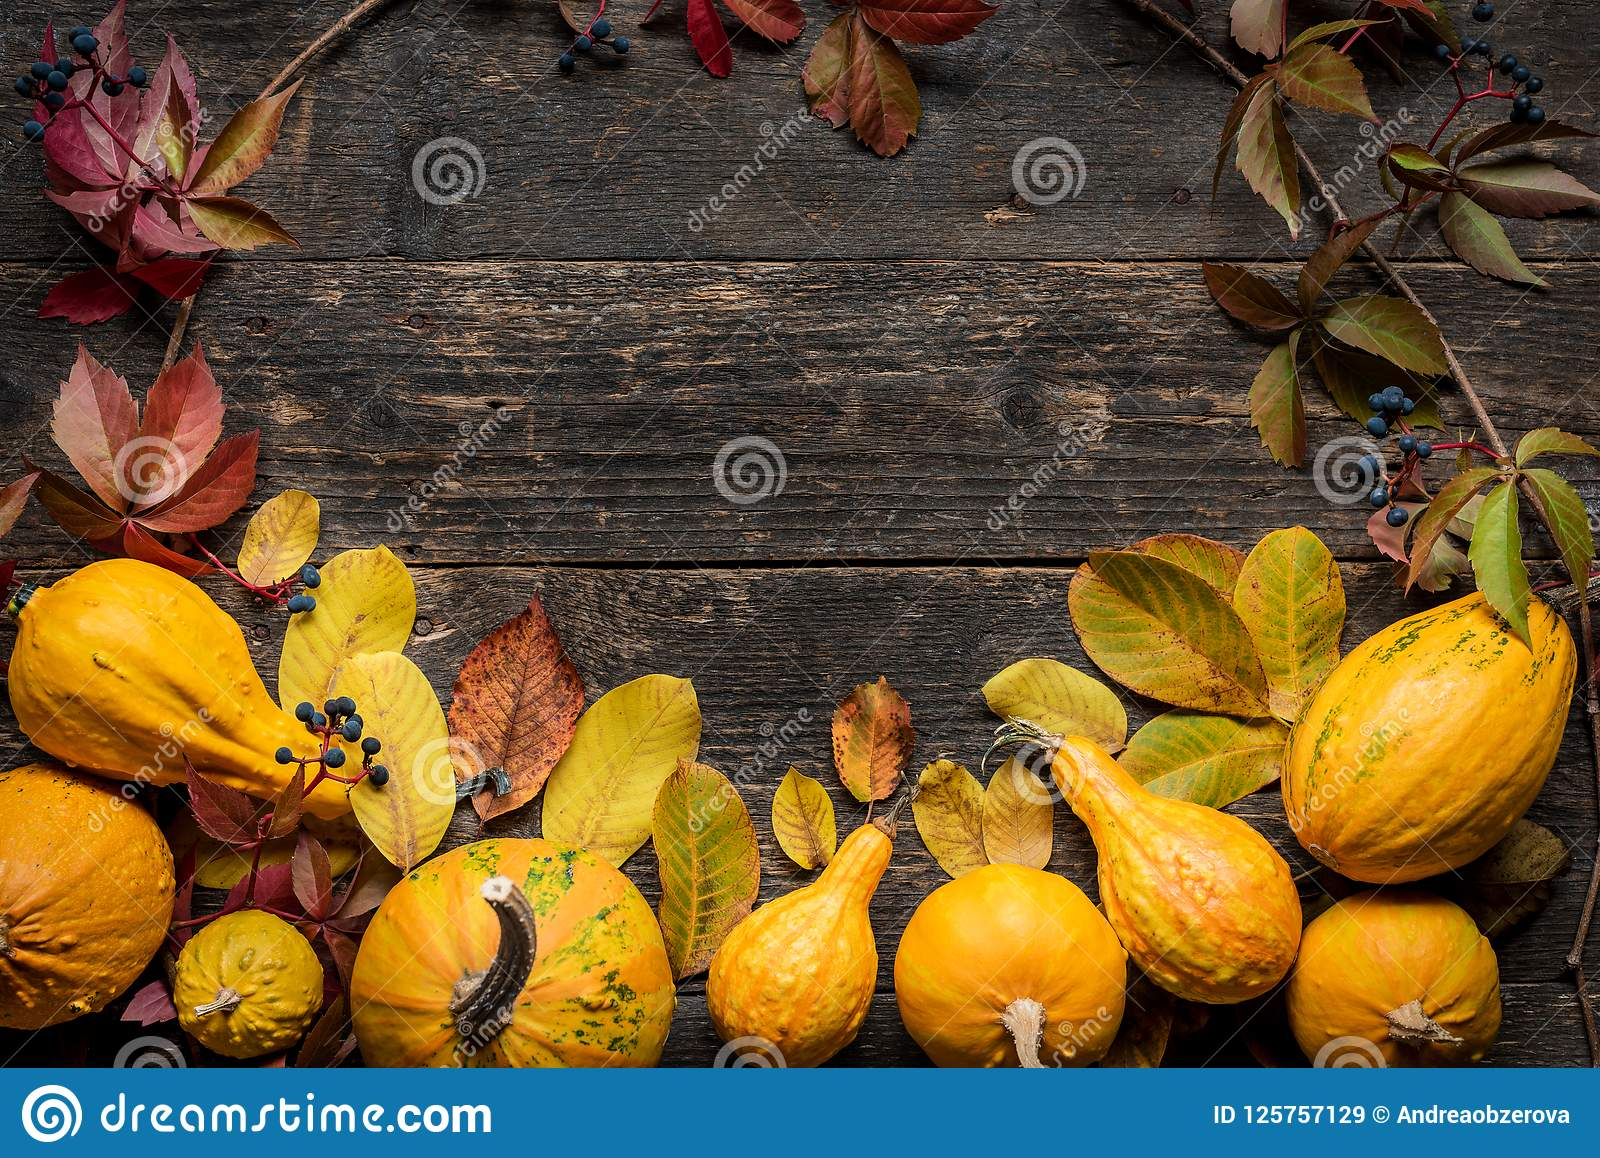 Happy Thanksgiving Background. Autumn Harvest and Holiday border. Selection of various pumpkins on dark wooden background.